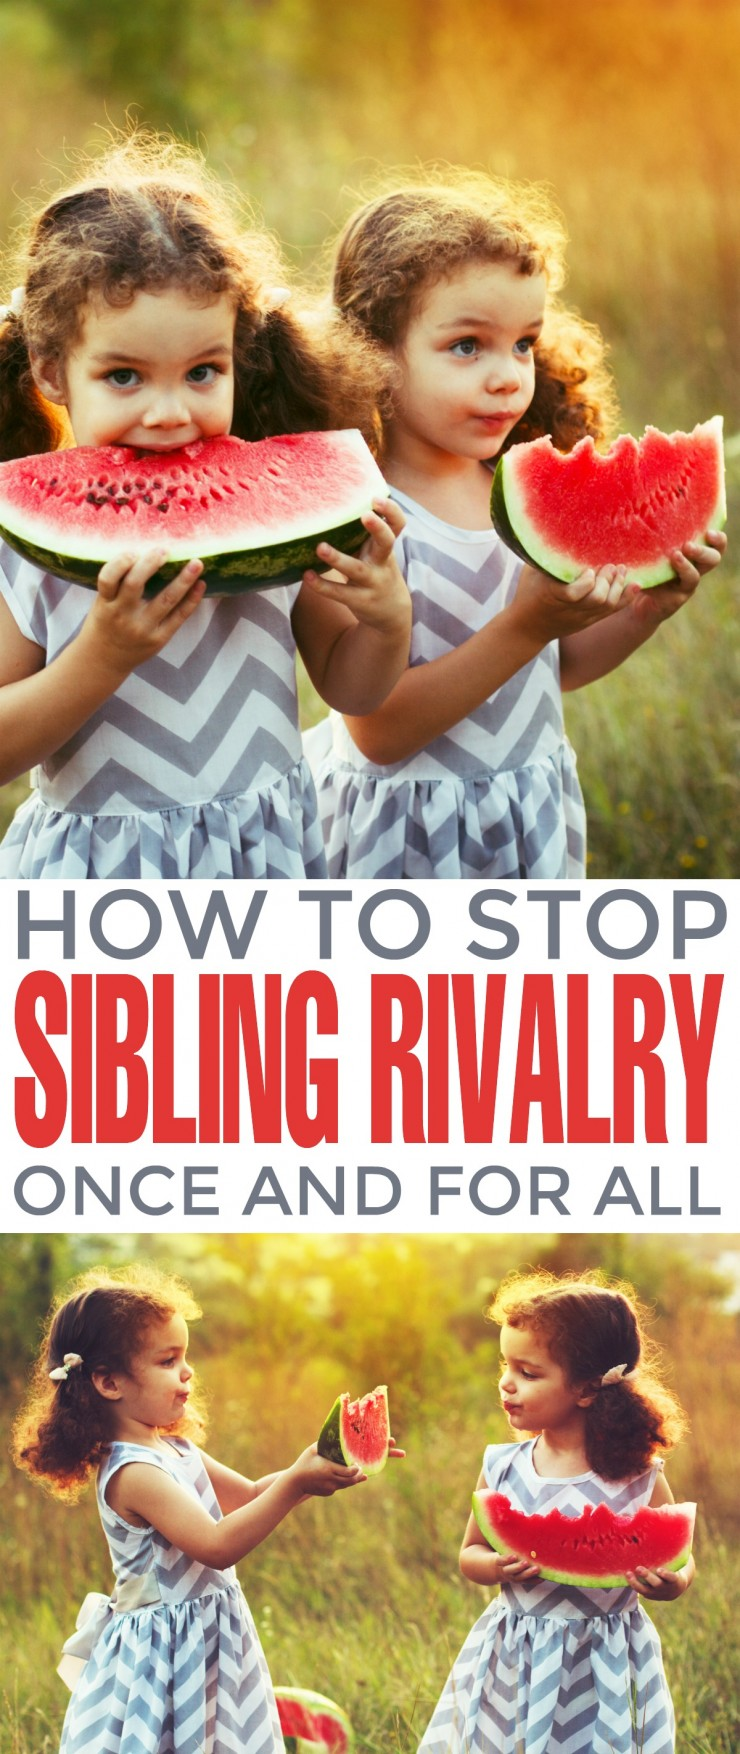 There are a few ways to stop sibling rivalry once and for all, fostering a positive relationship between your offspring and bringing a wave of calm over a home once filled with sibling turmoil. How to Stop Sibling Rivalry Once and For All